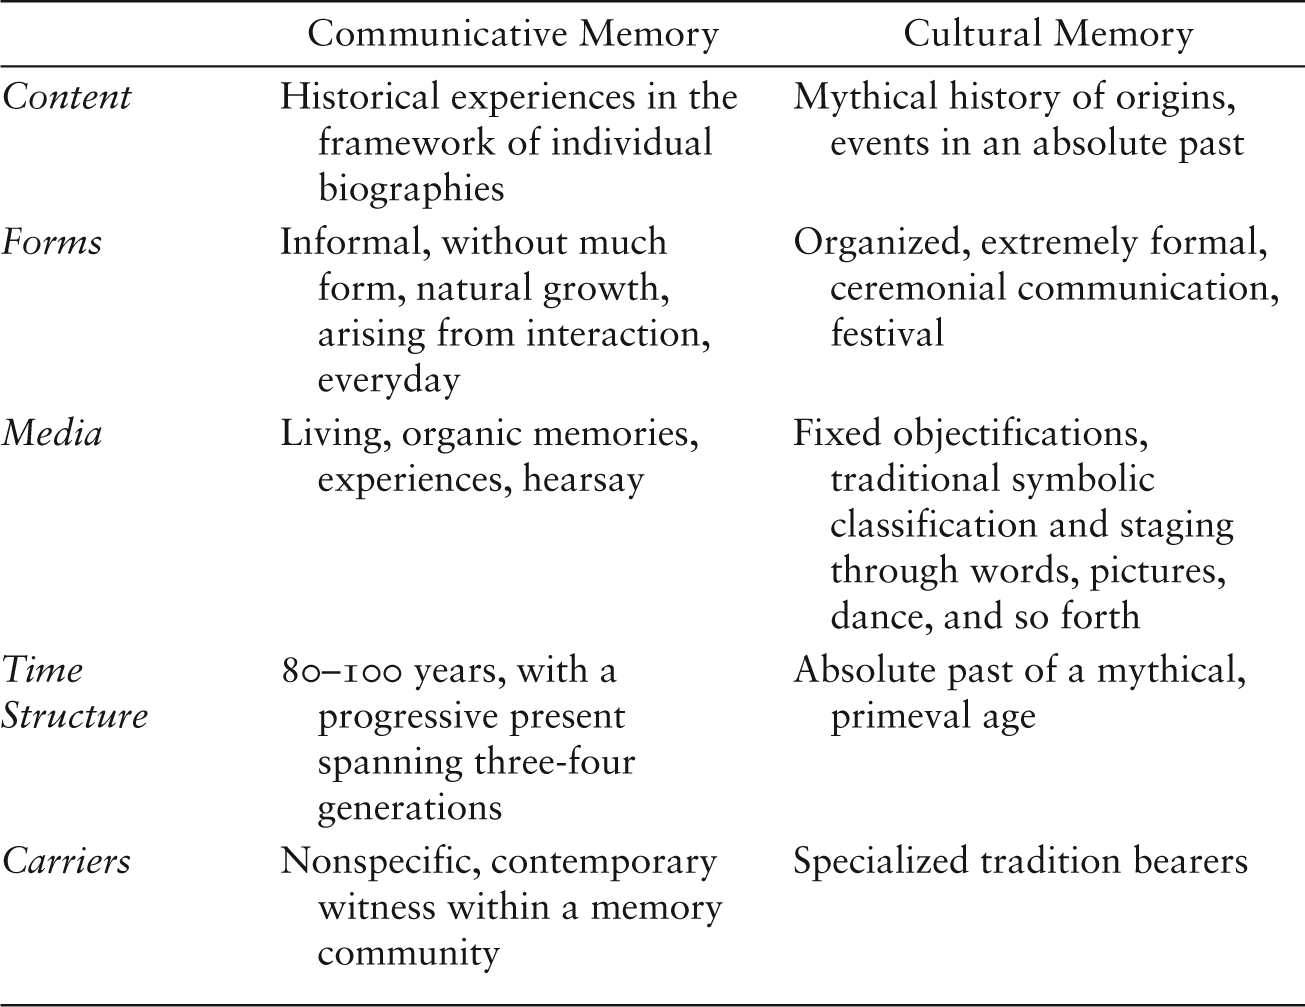 Methodological Considerations (Part I) - History and Memory